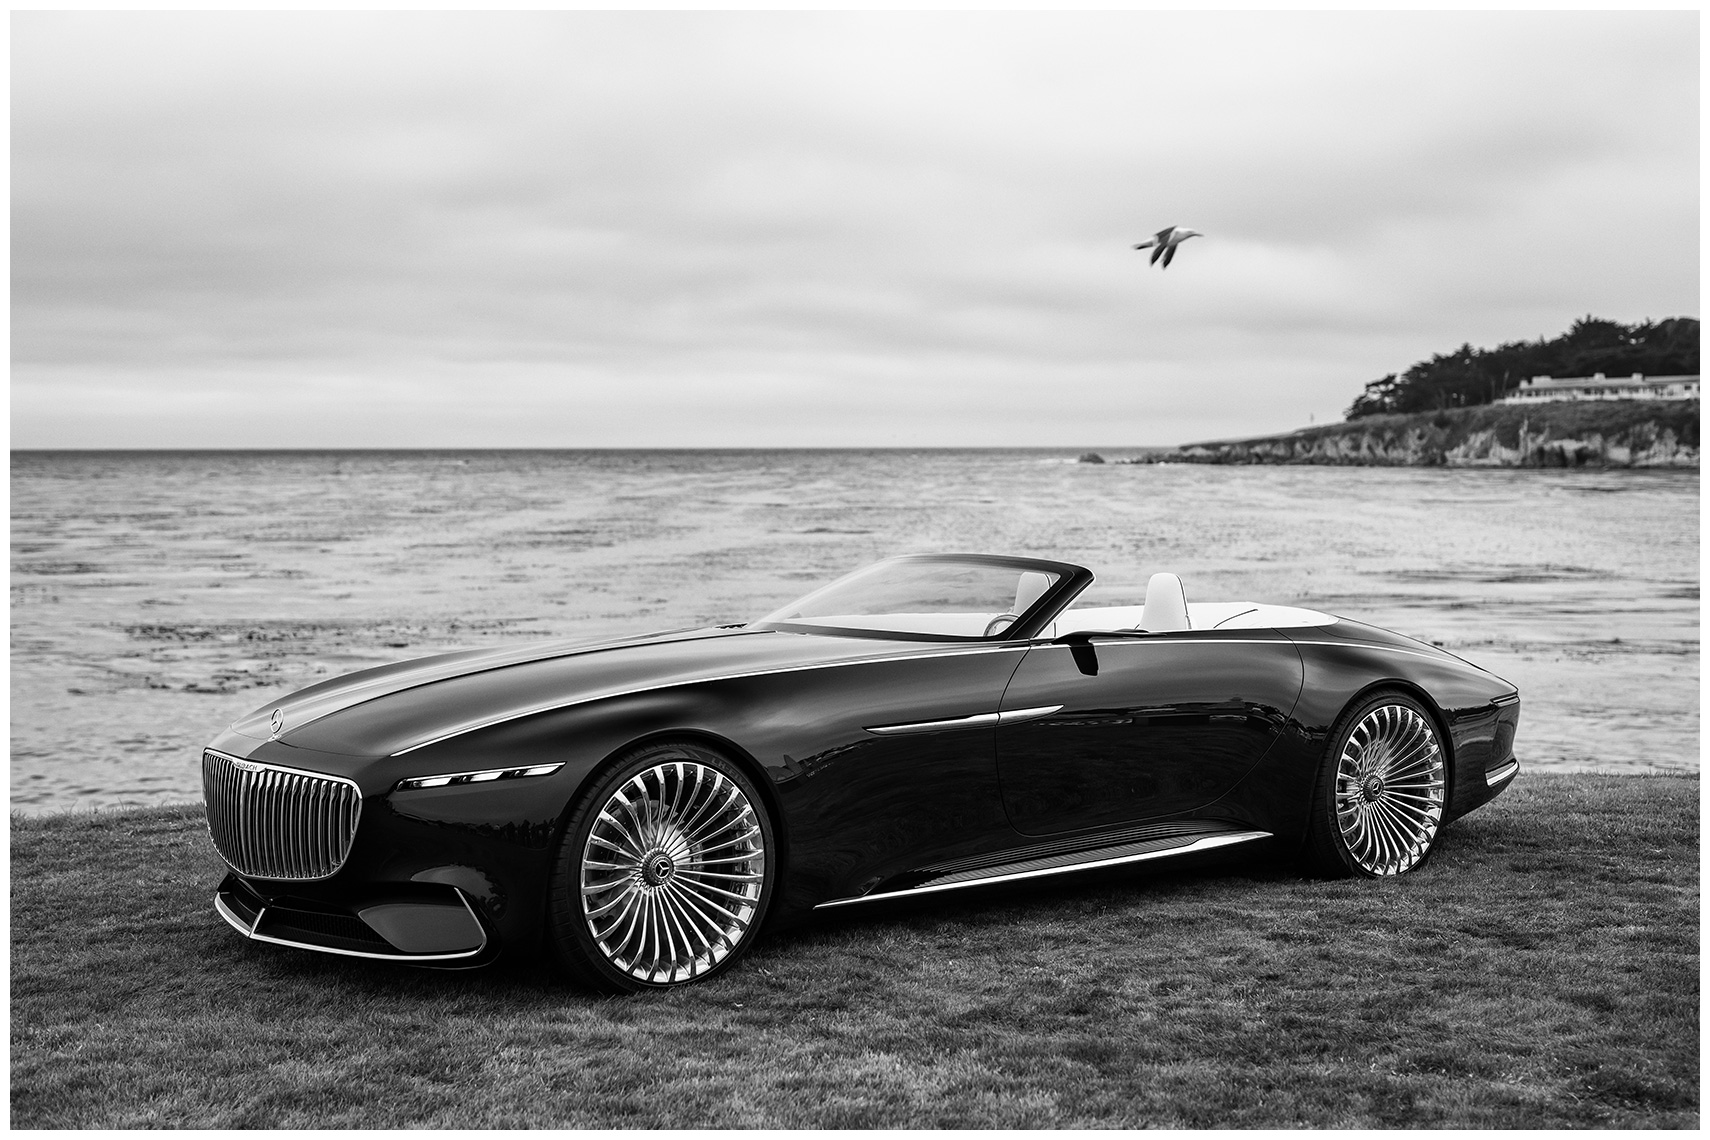 vision 6 cabriolet mercedes-maybach pebble beach black and white car photography